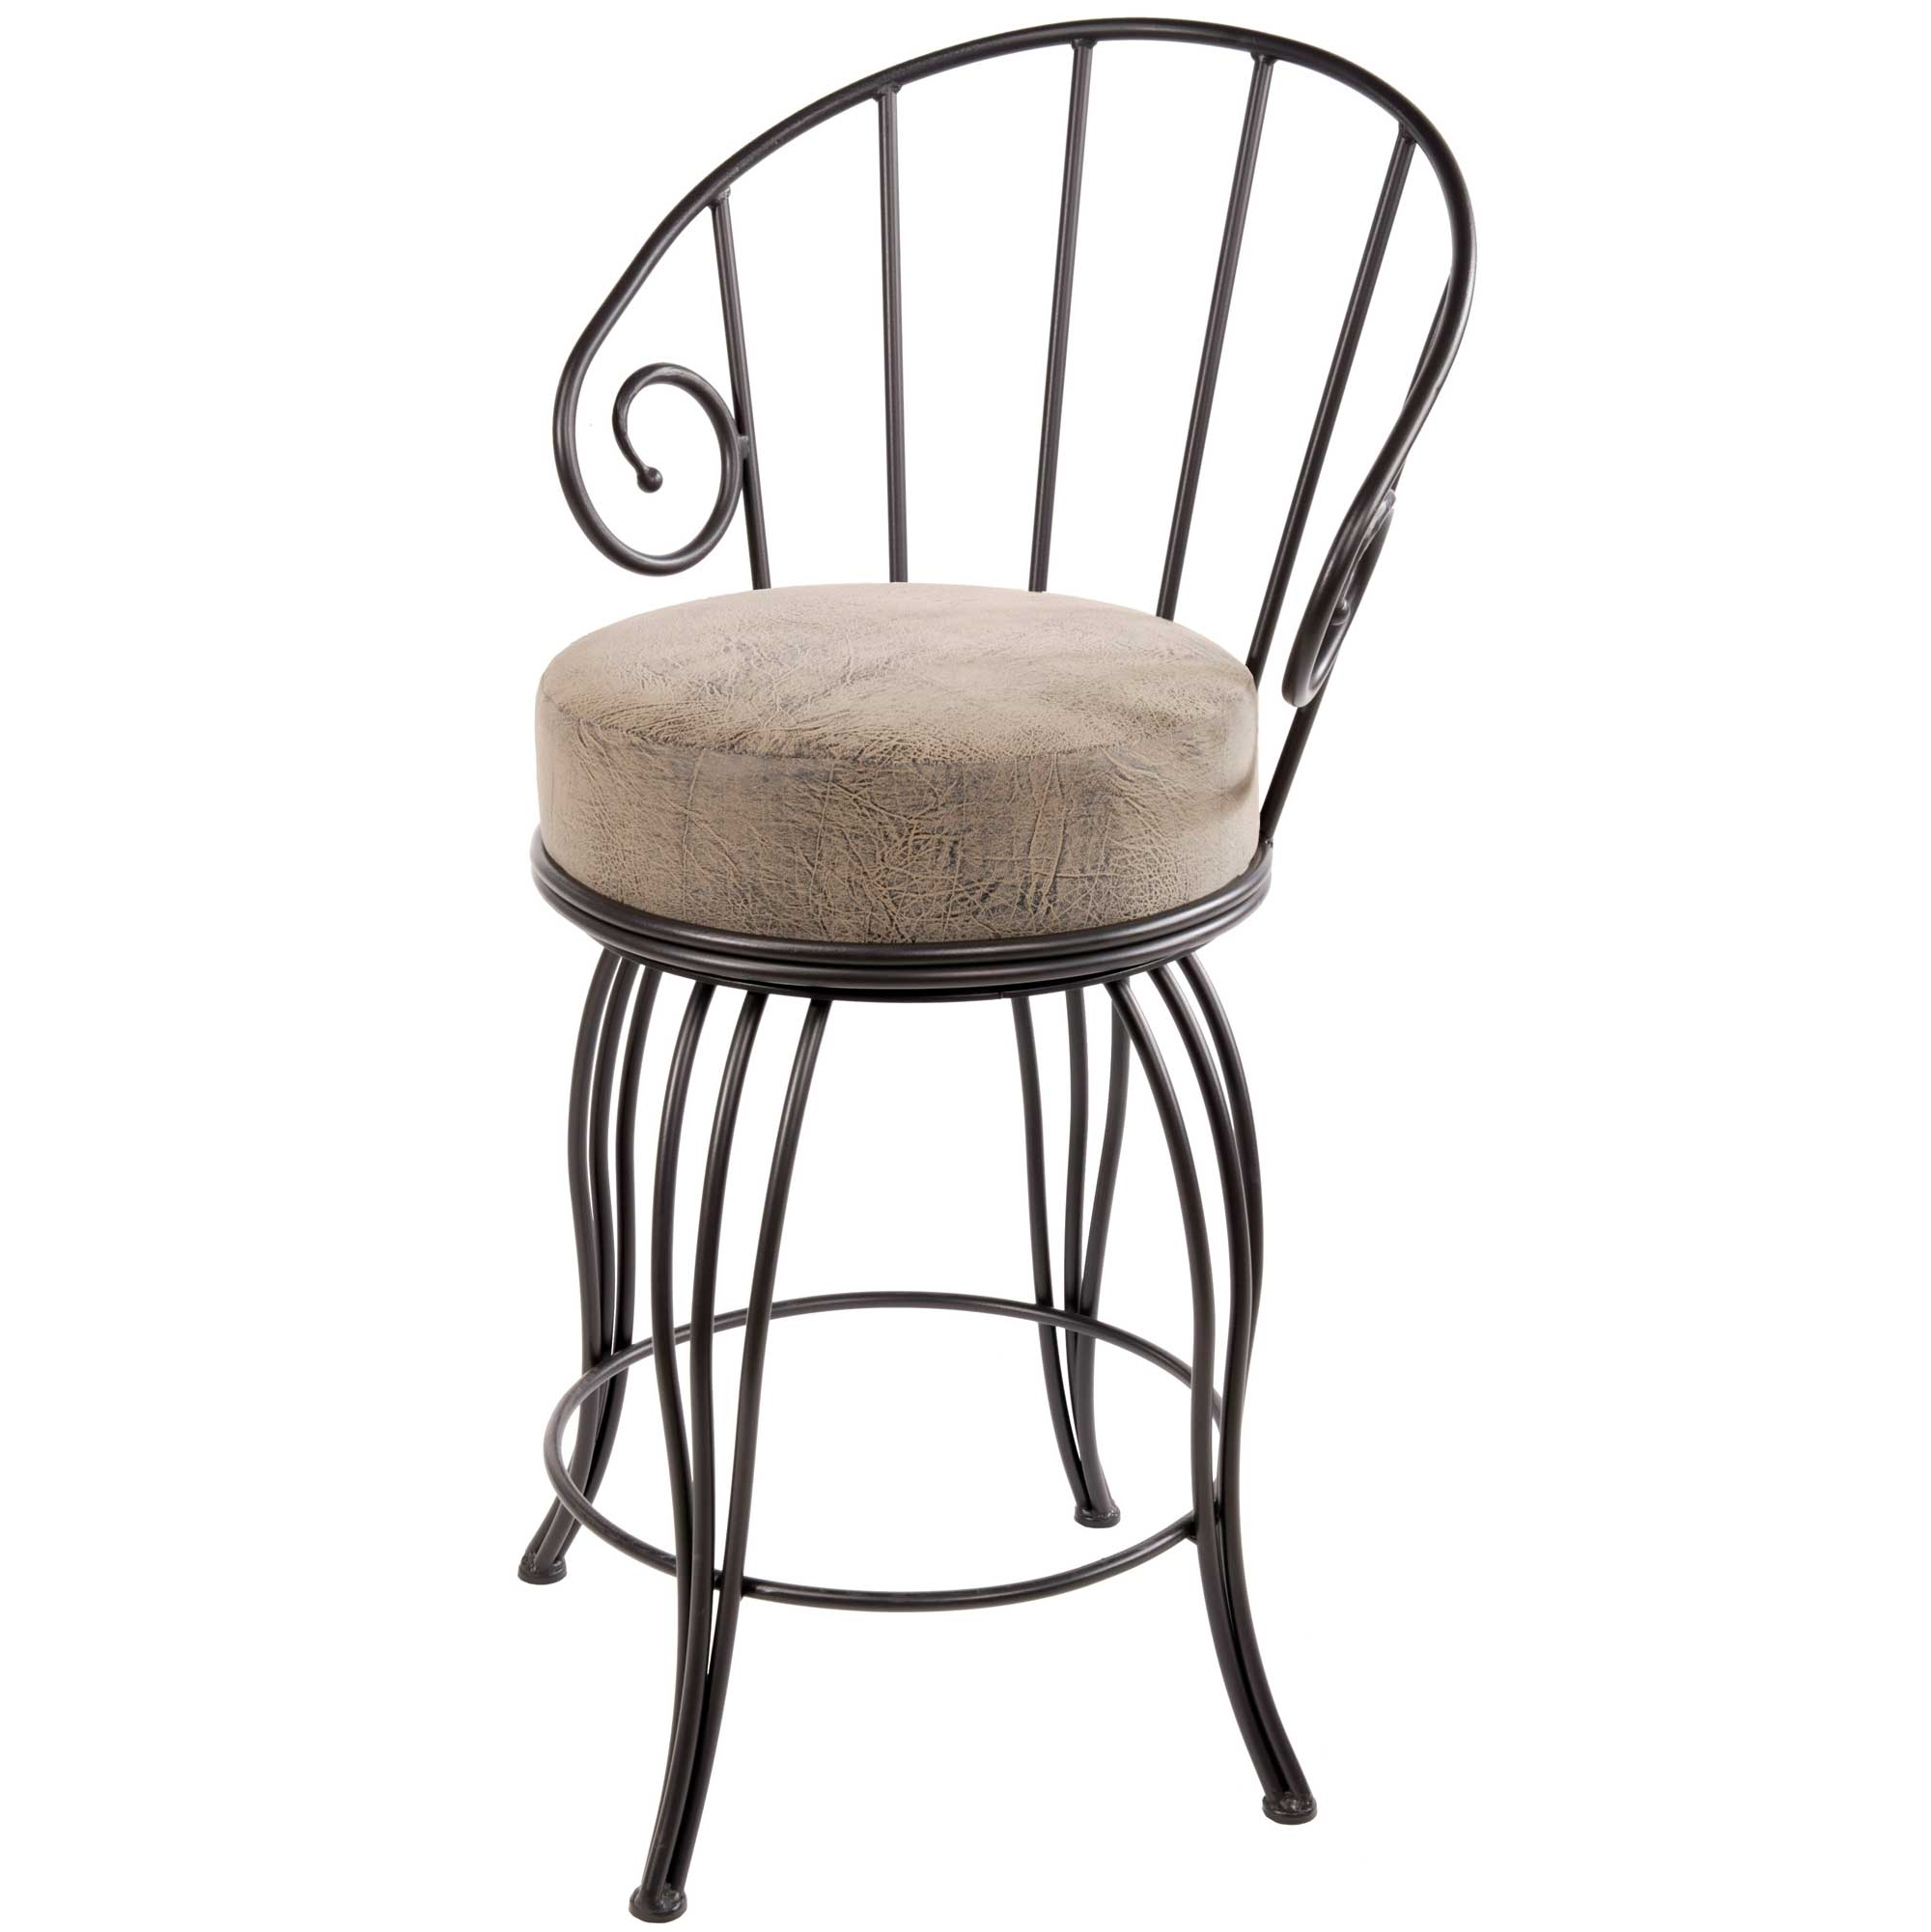 Bella Barstool 25quot : TWI 30 091 2 from www.timelesswroughtiron.com size 2000 x 2001 jpeg 410kB